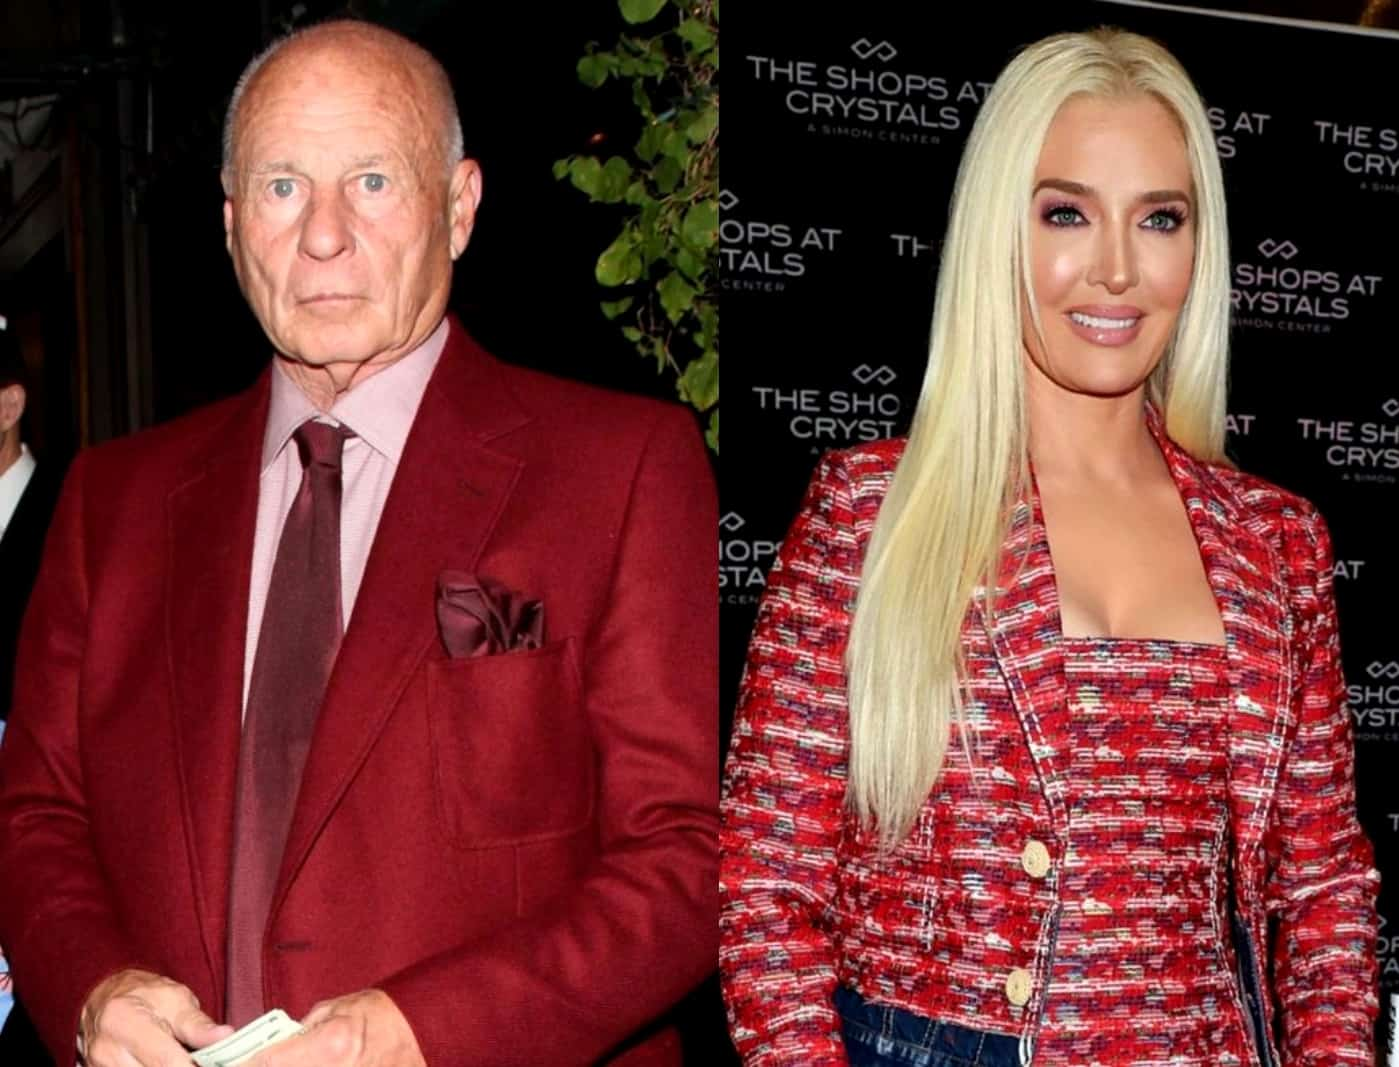 Attorney Reveals $6 Million in Liens on Erika Jayne and Tom Girardi's Home, Criticizes Thomas Being Able to Live There Despite Alleged Crimes, Plus Mansion Price Slashed to $9.98 Million